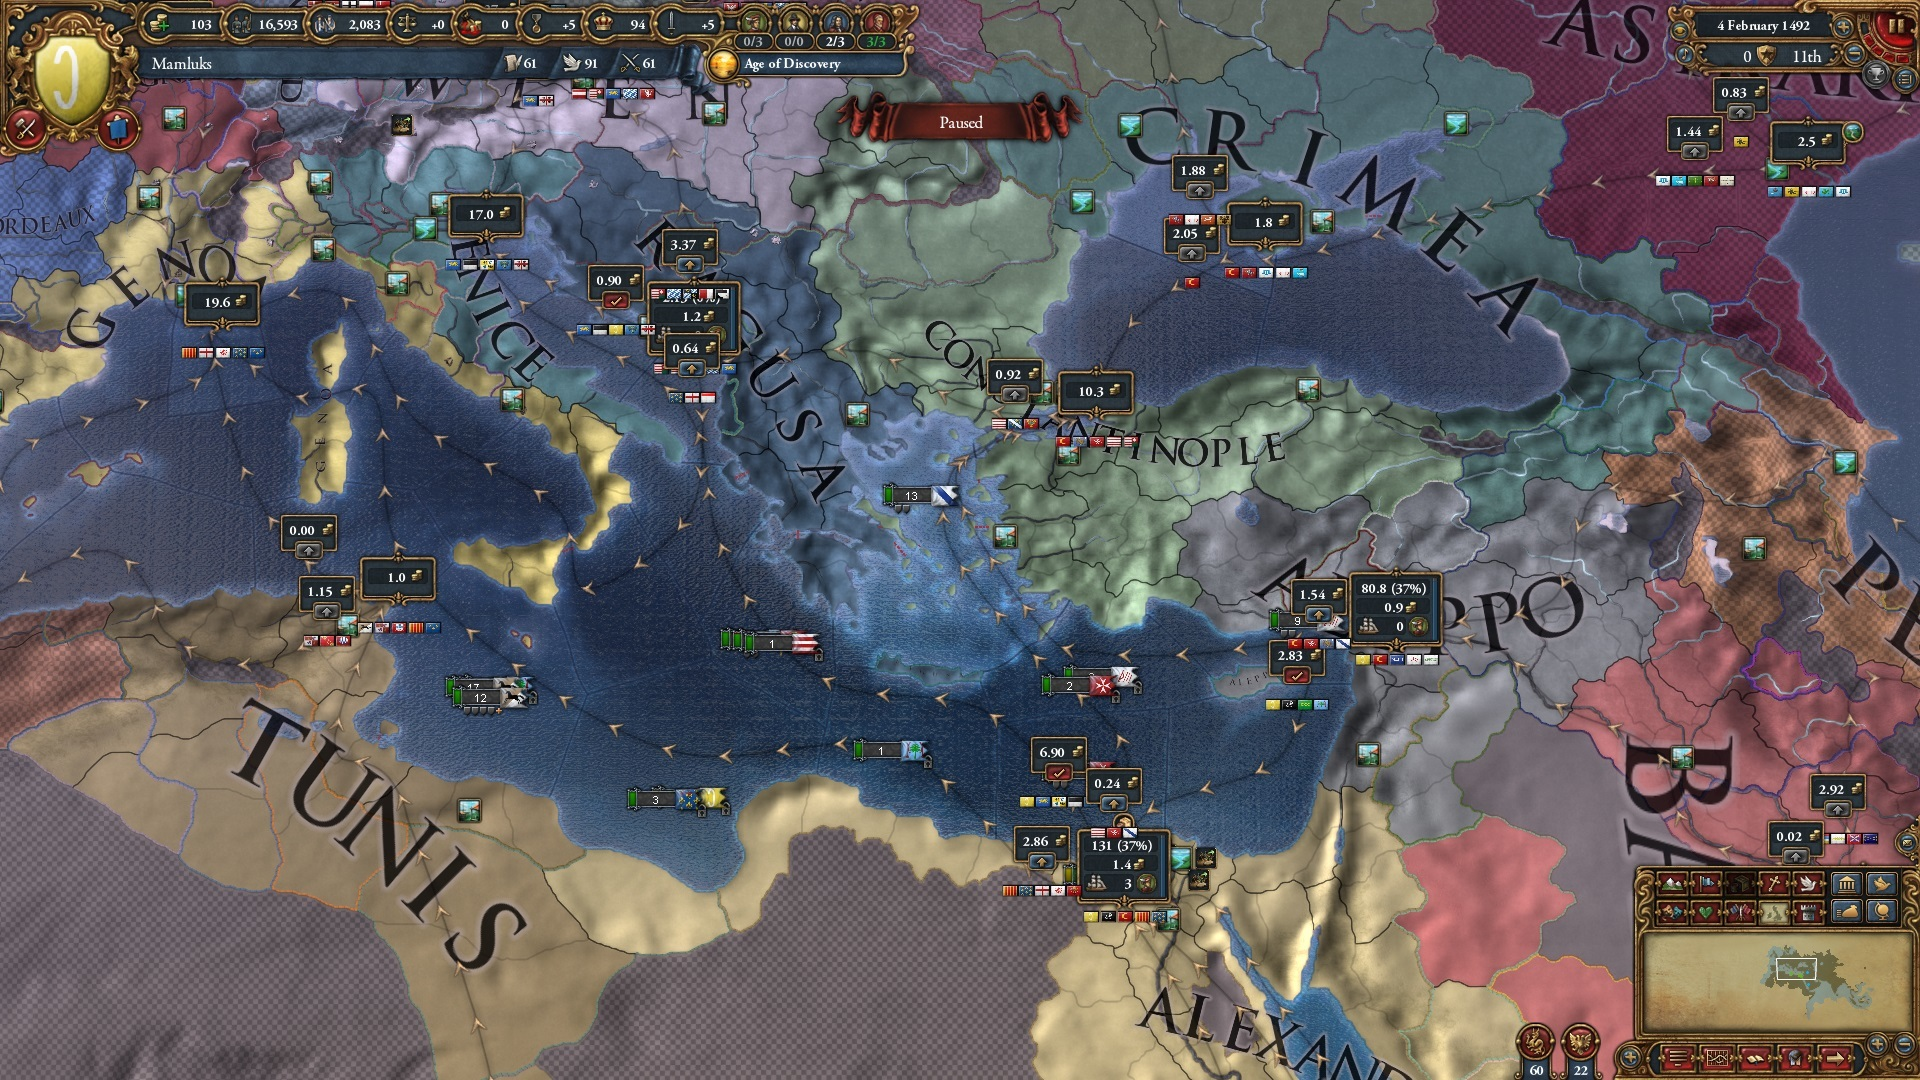 Europa Universalis IV :: Trade Steering, Naval Doctrines and